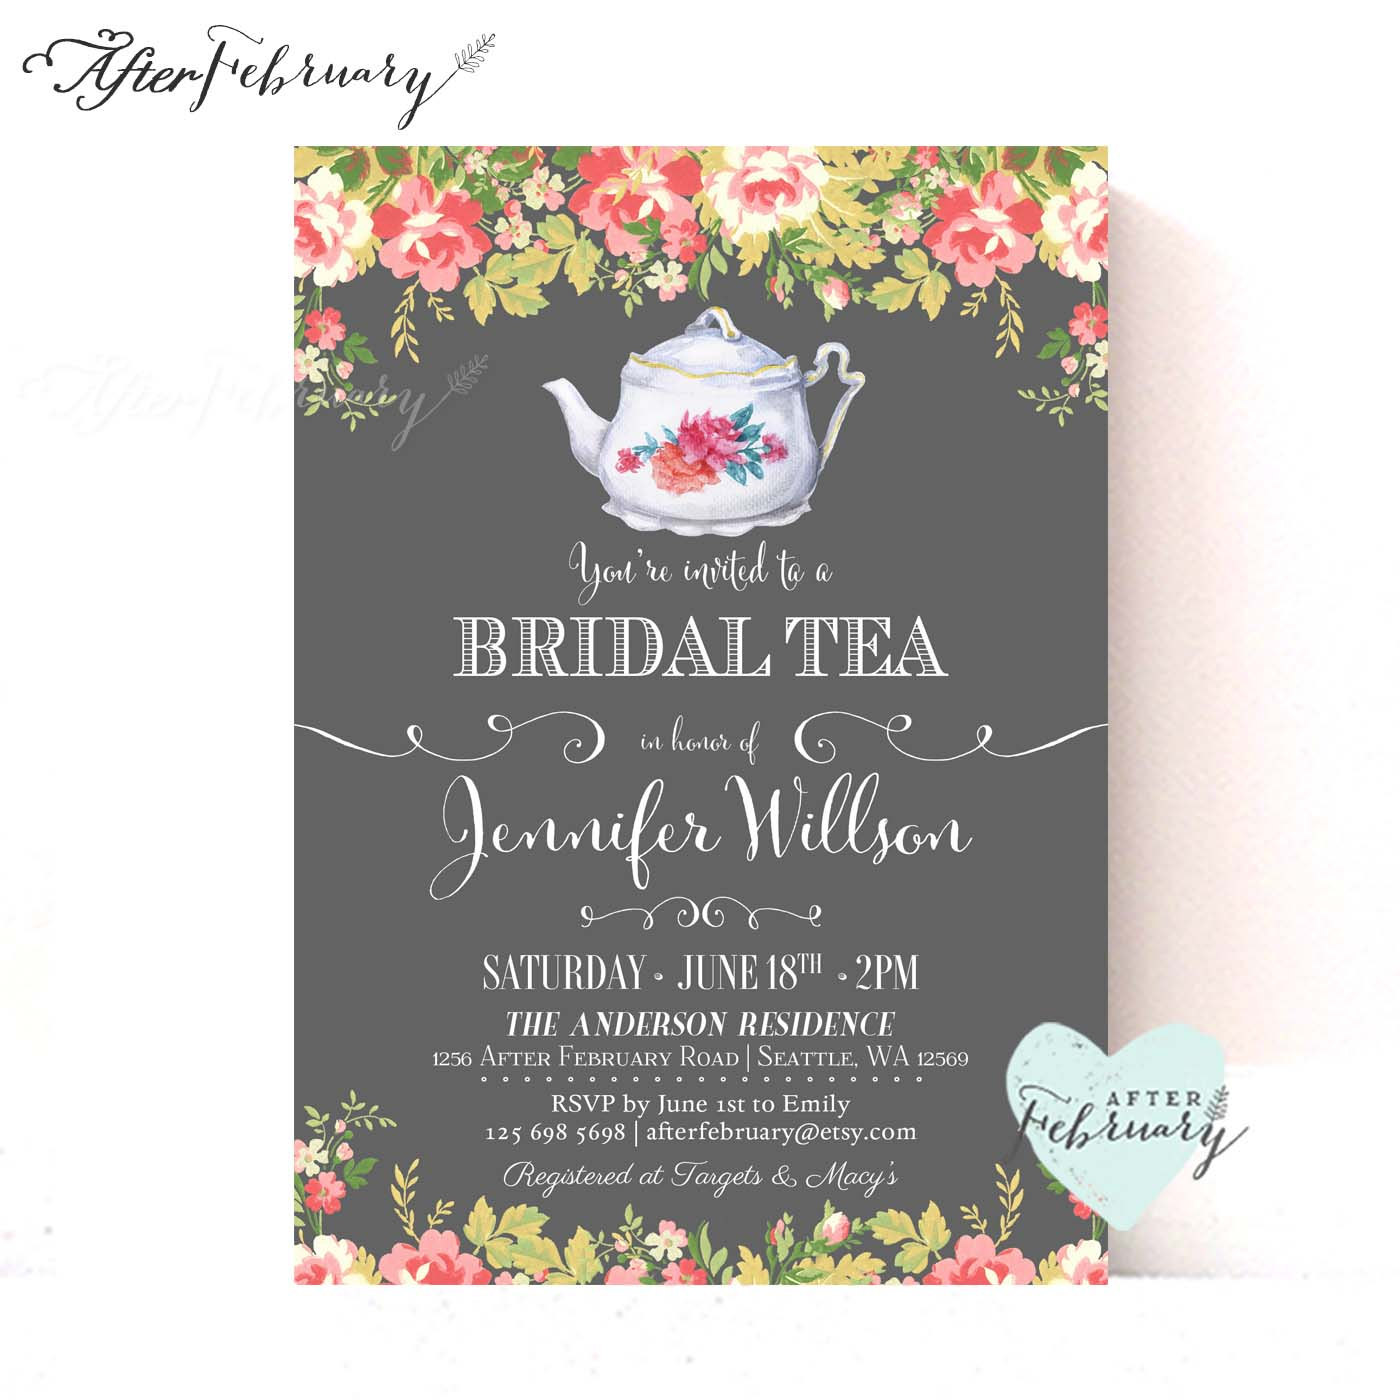 Wedding vintage printables tea clipart clipart transparent library Bridal tea party invitation clipart - ClipartFest clipart transparent library